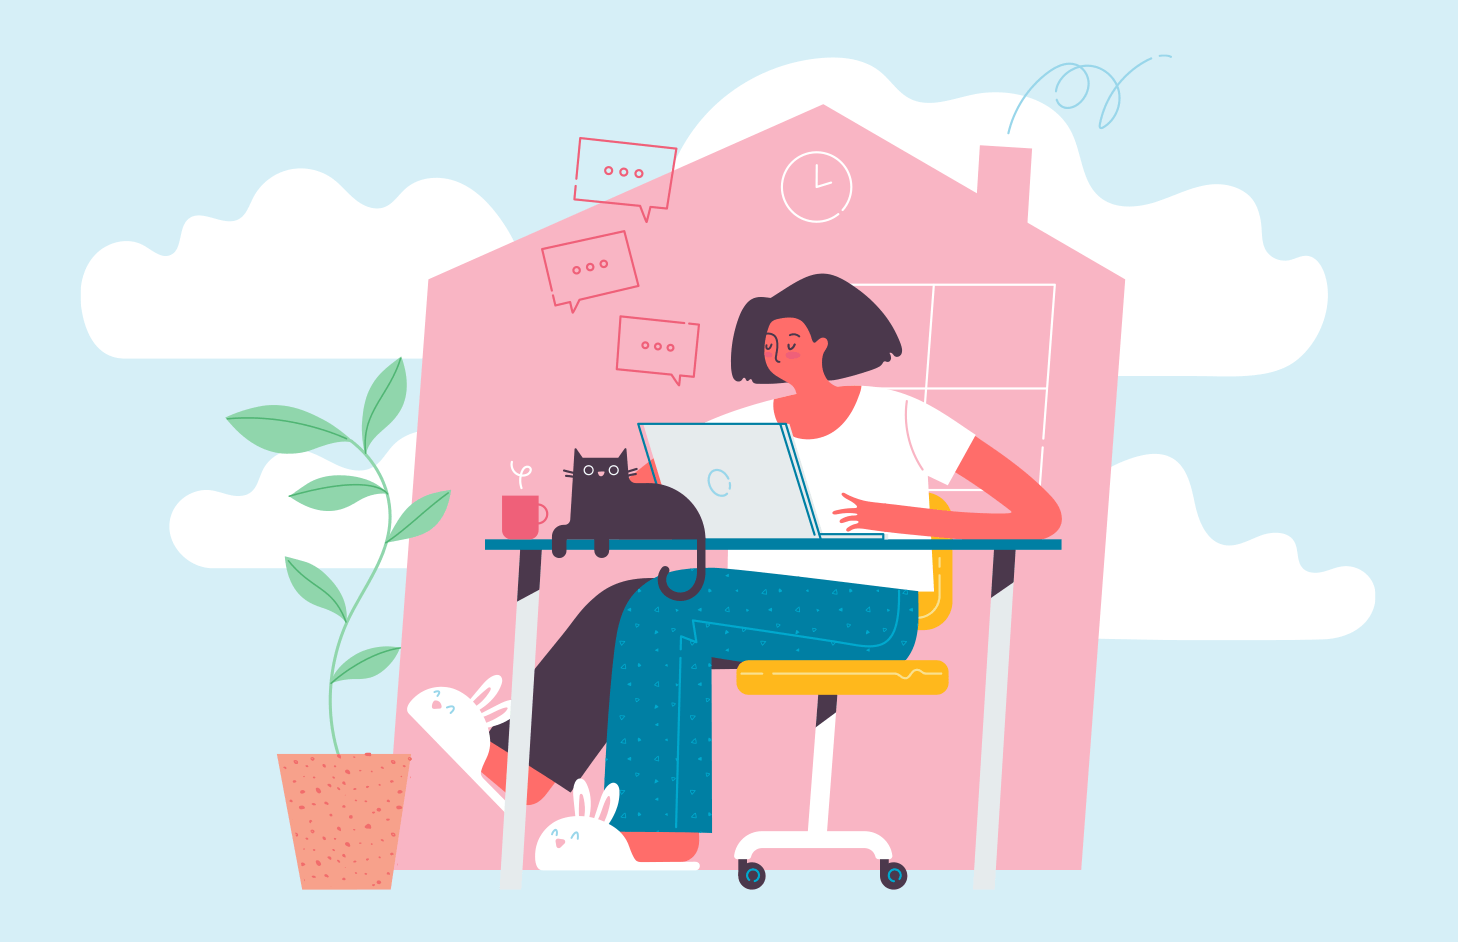 An illustration of a woman working on a computer at home